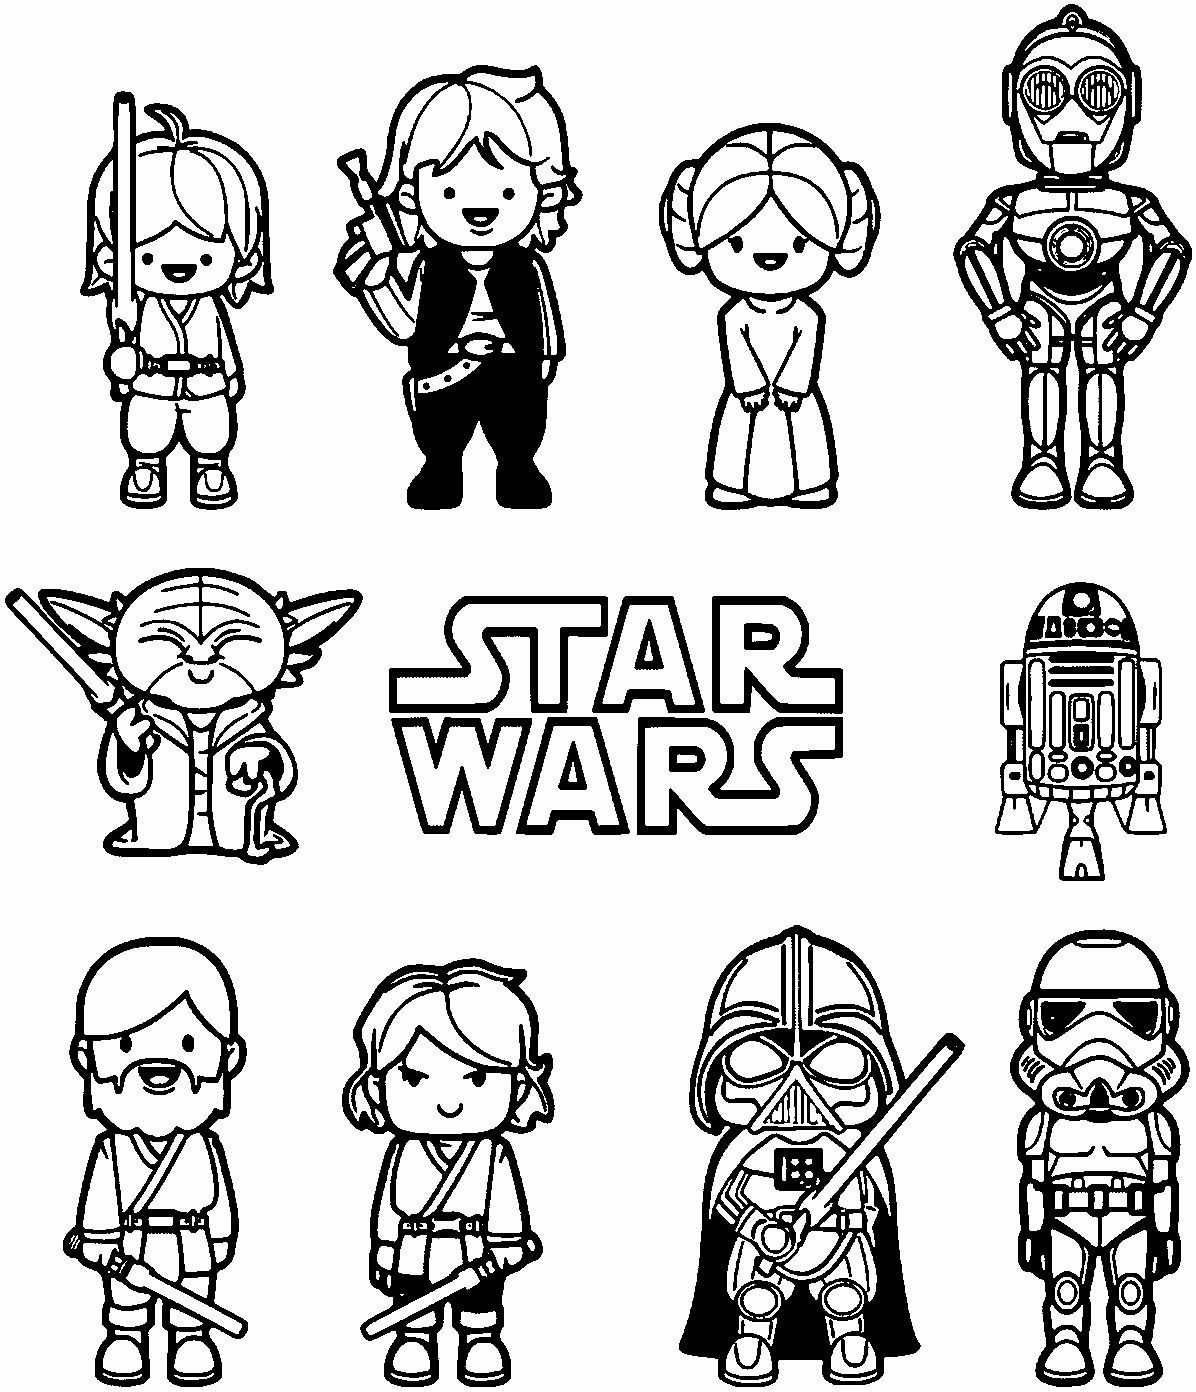 24 Star Wars Coloring Page In 2020 Star Wars Coloring Sheet